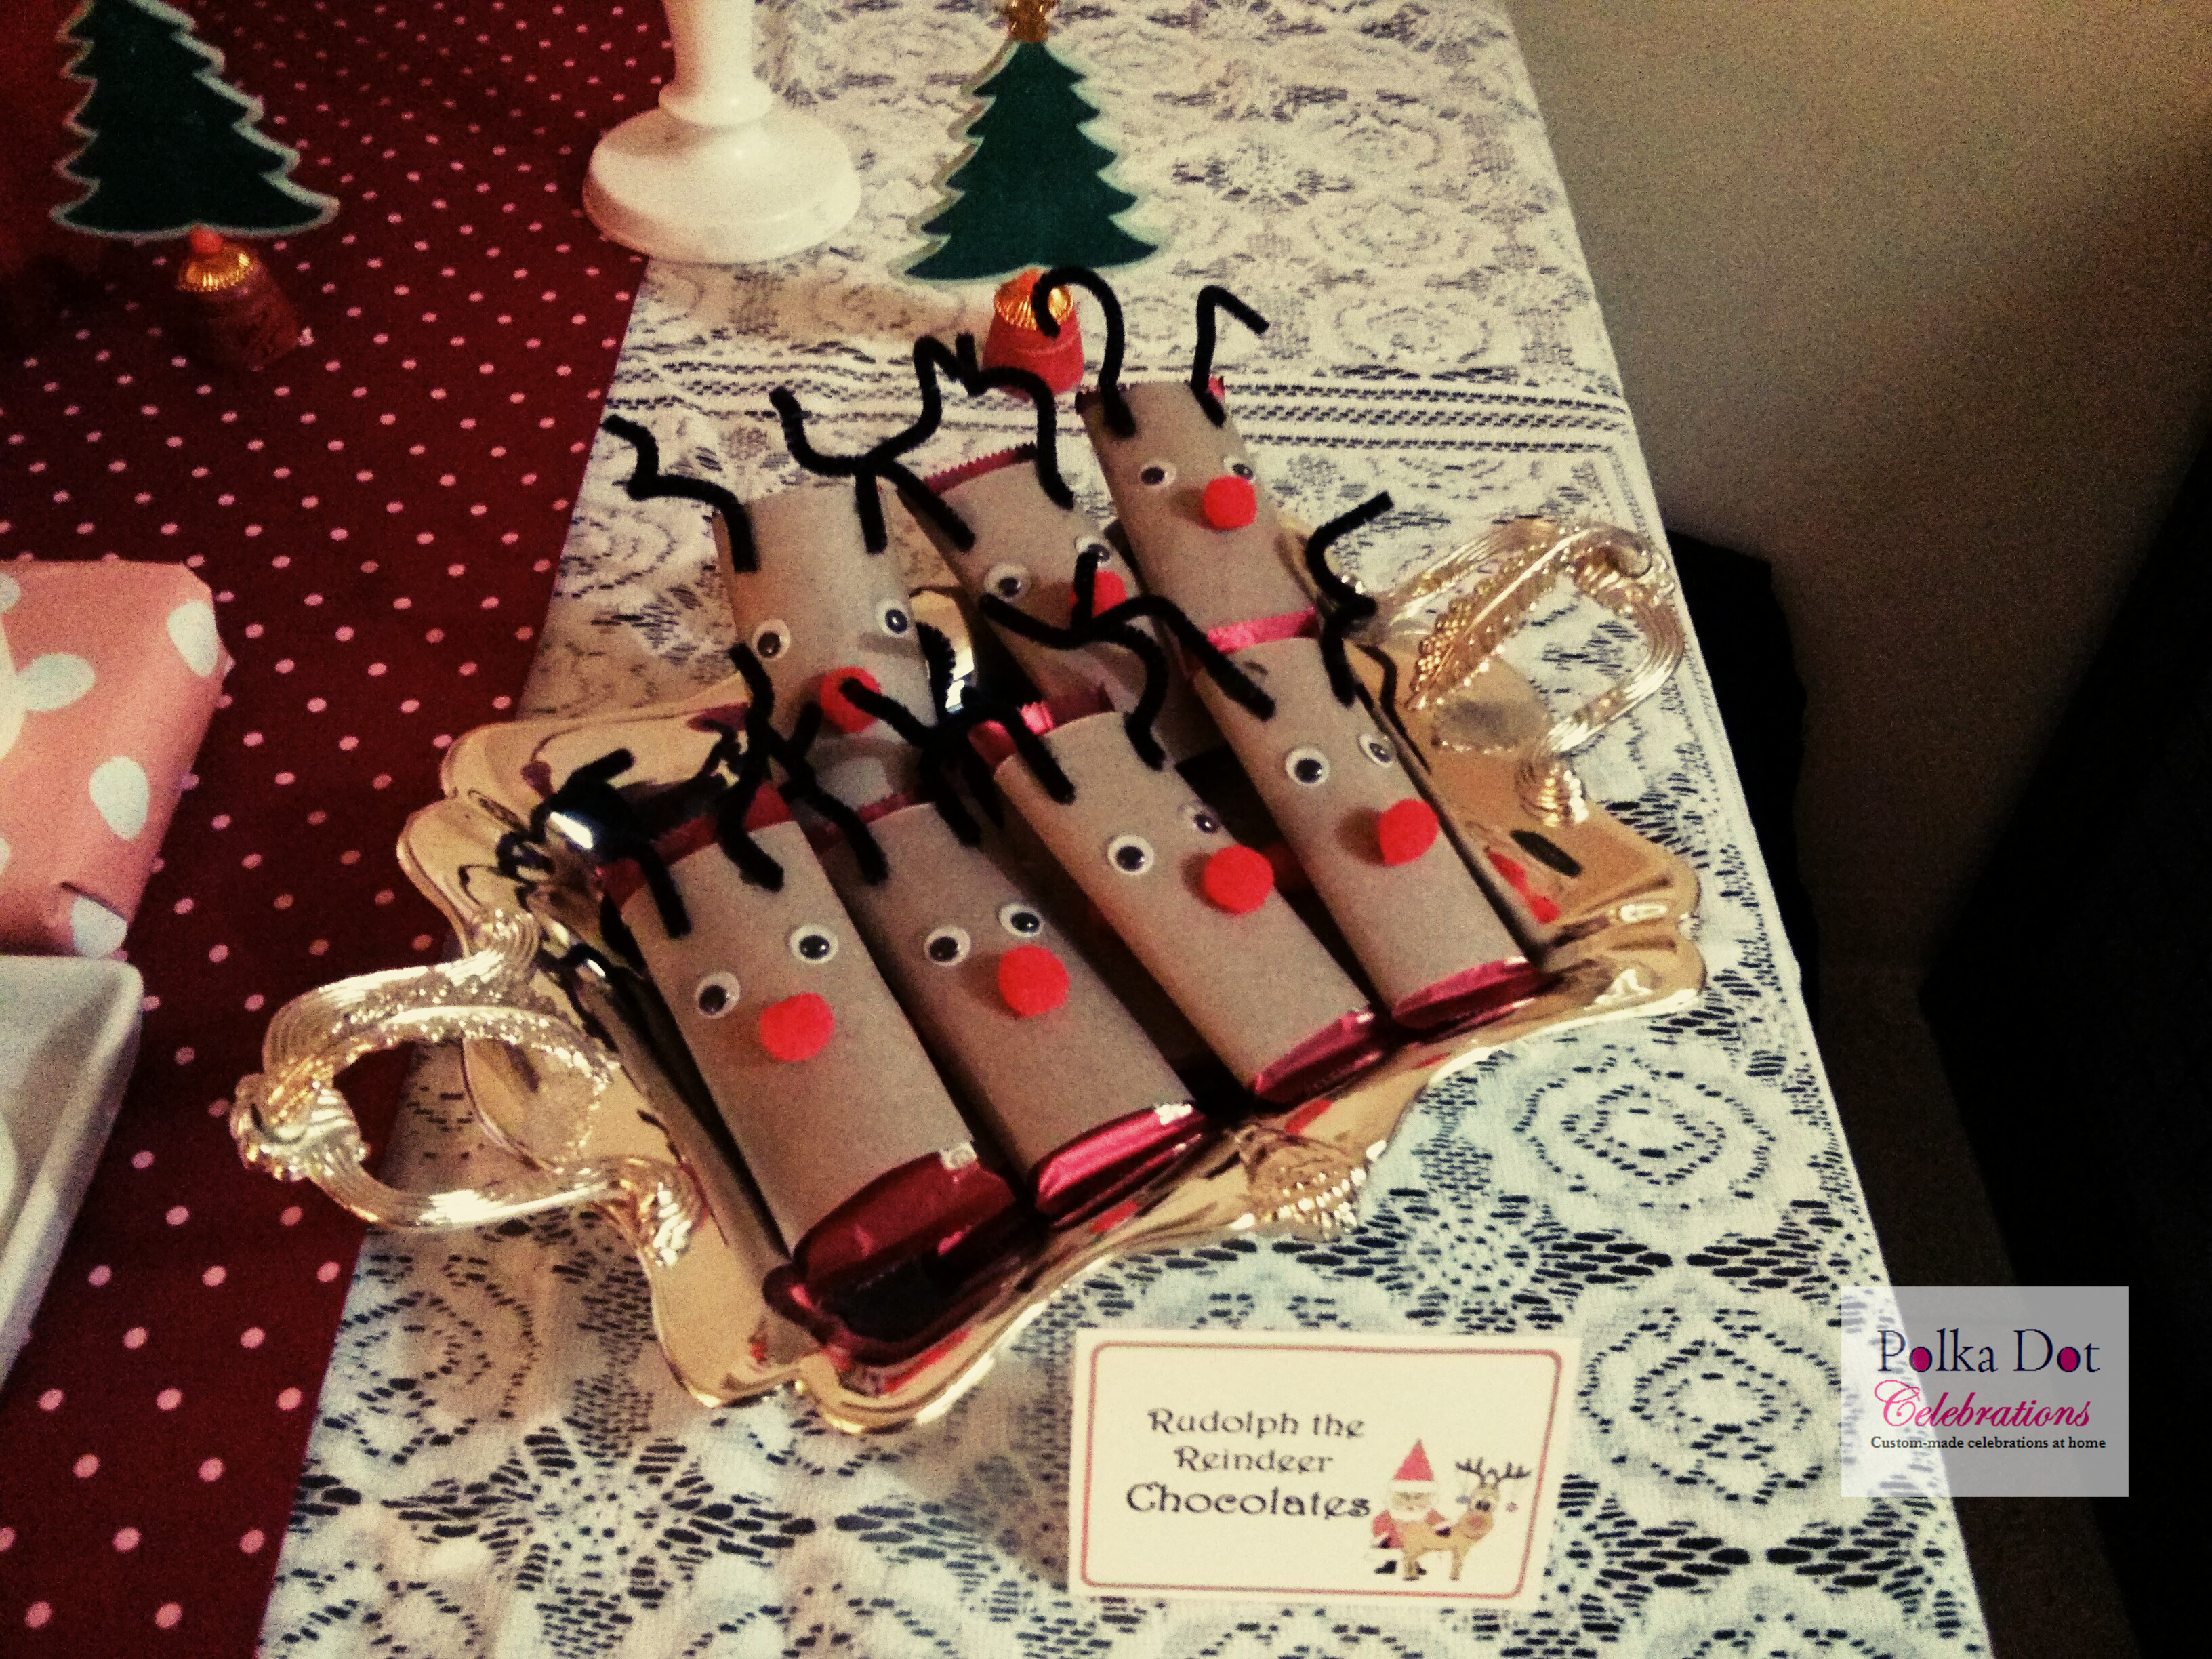 Childrens Christmas Party Ideas Part - 33: Christmas Party Ideas For Kids Party